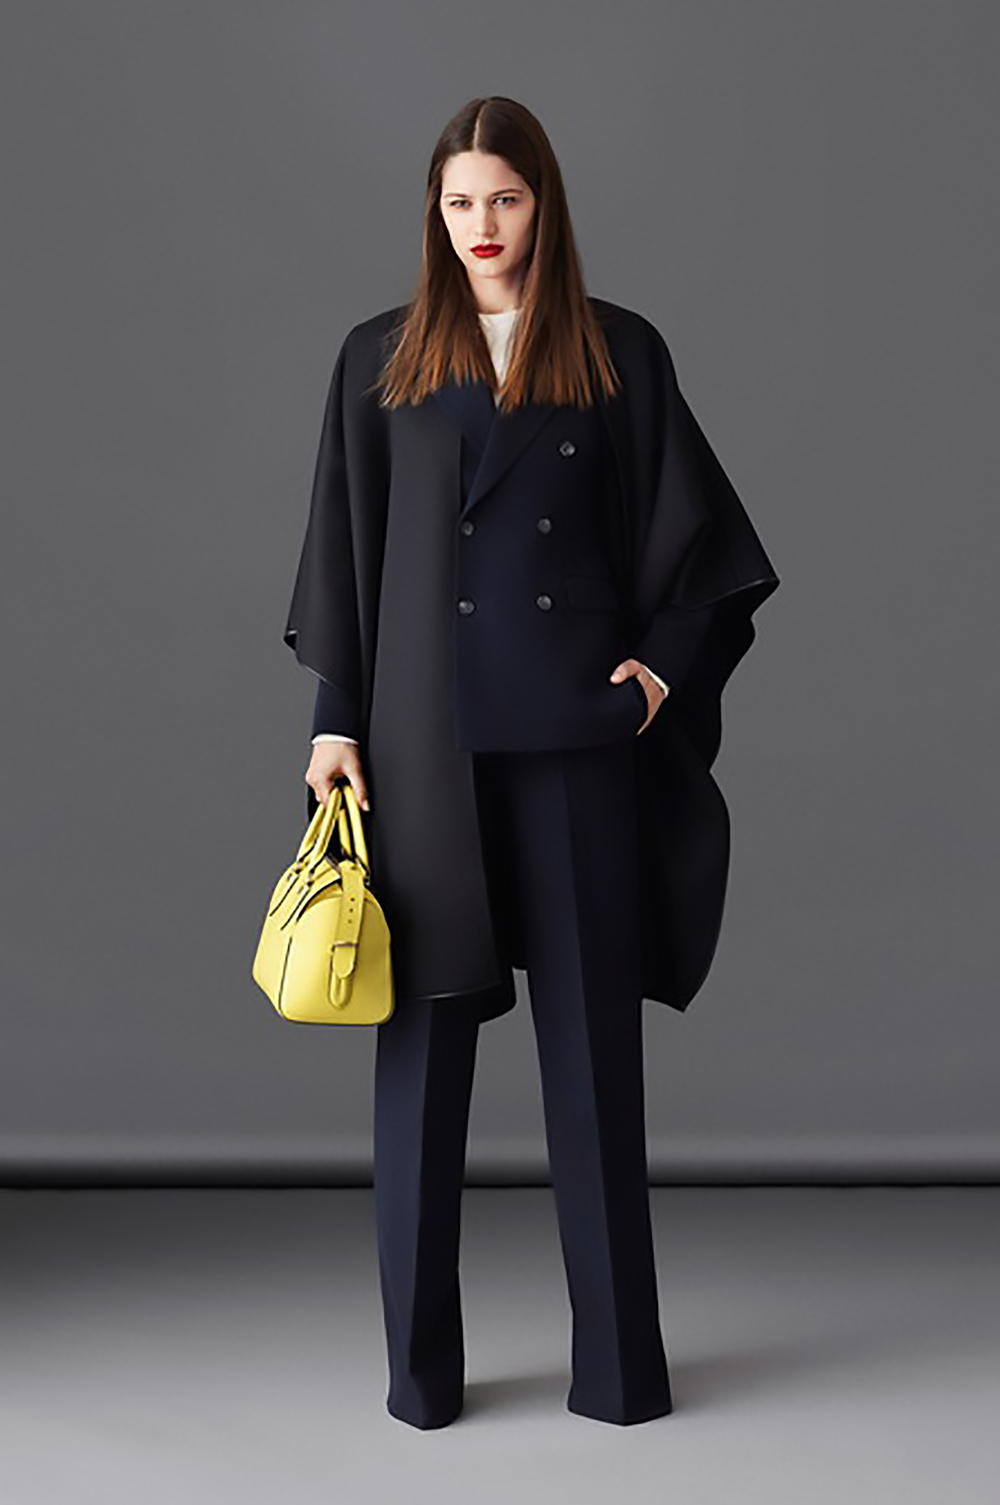 style.com bally fall 2014 rtw look 14 fall 2014 Milan 1500.jpg